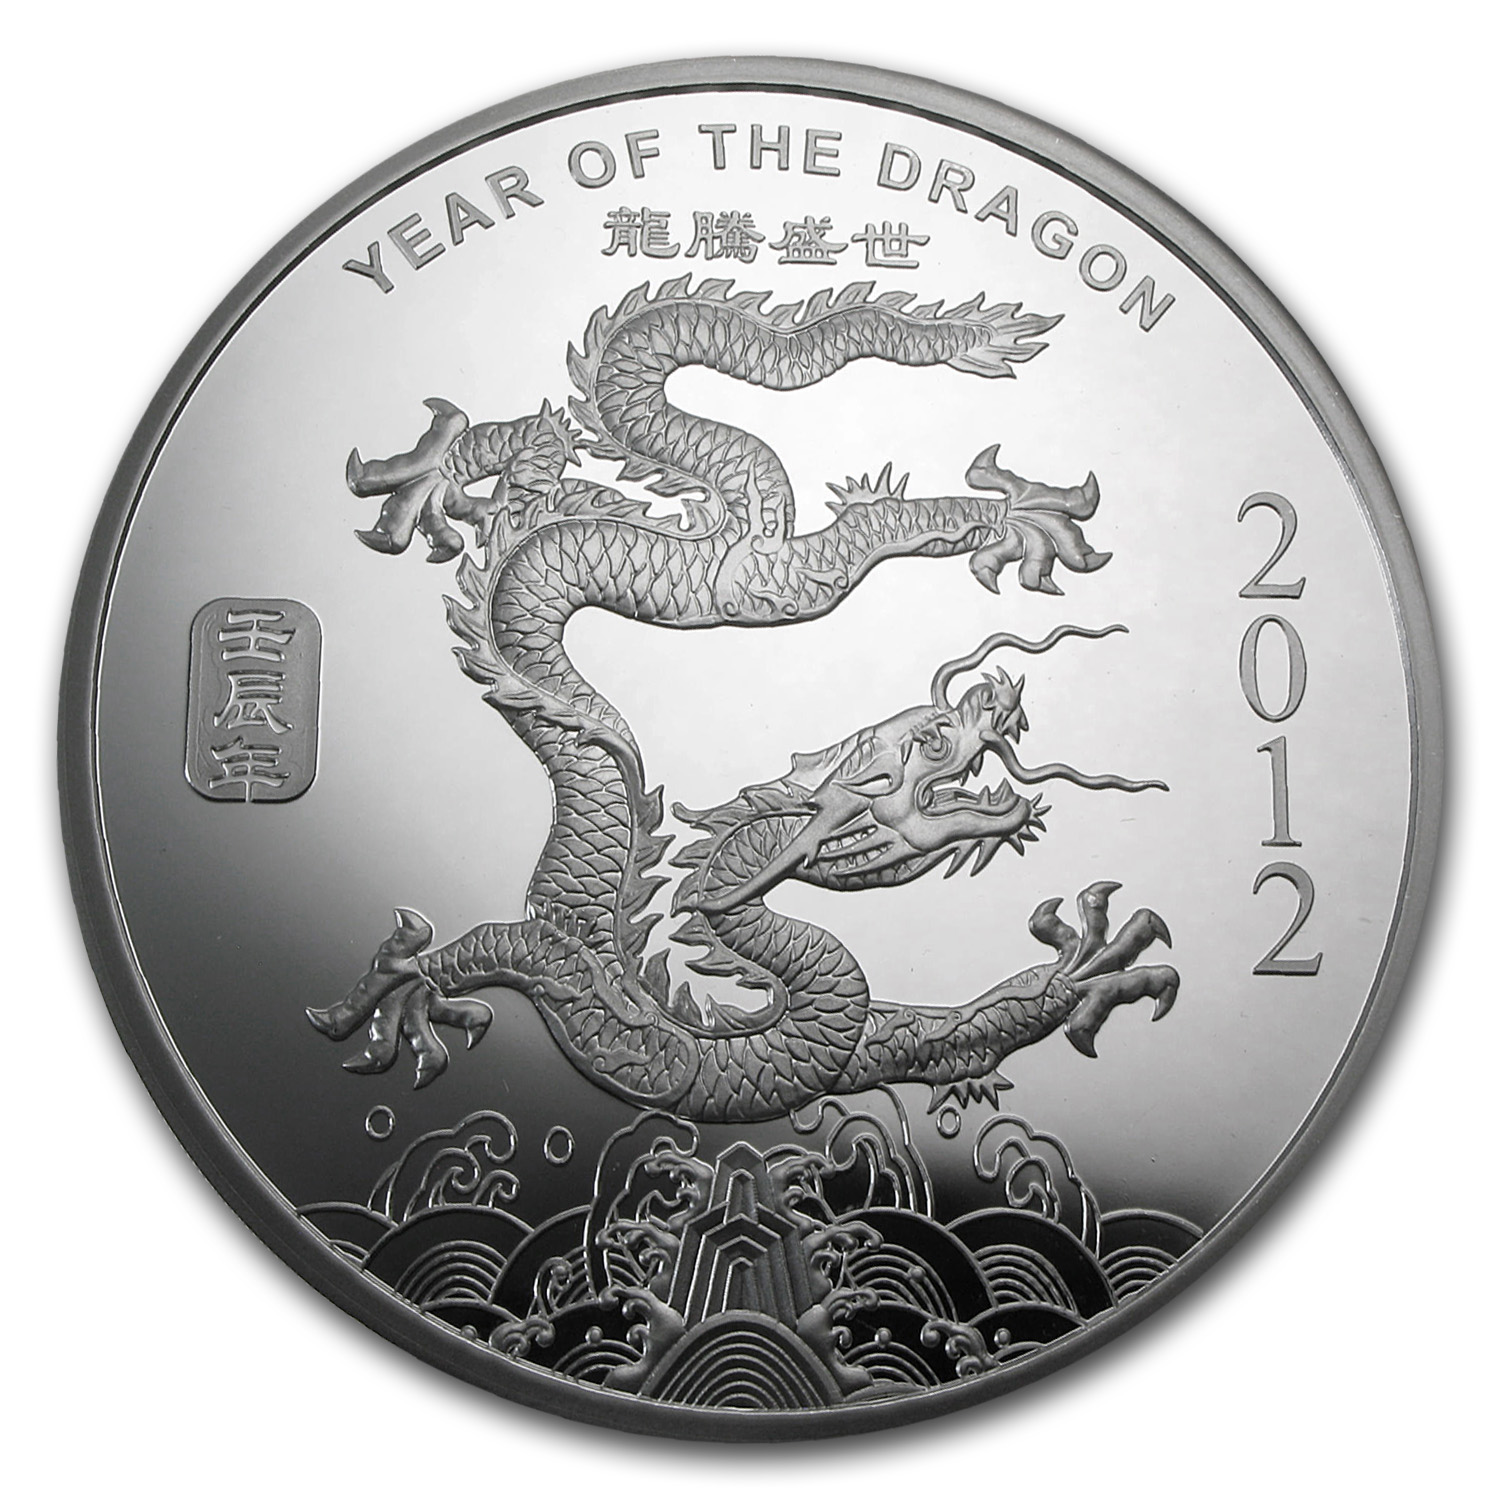 10 oz APMEX 2012 Year of the Dragon Silver Round .999 Fine